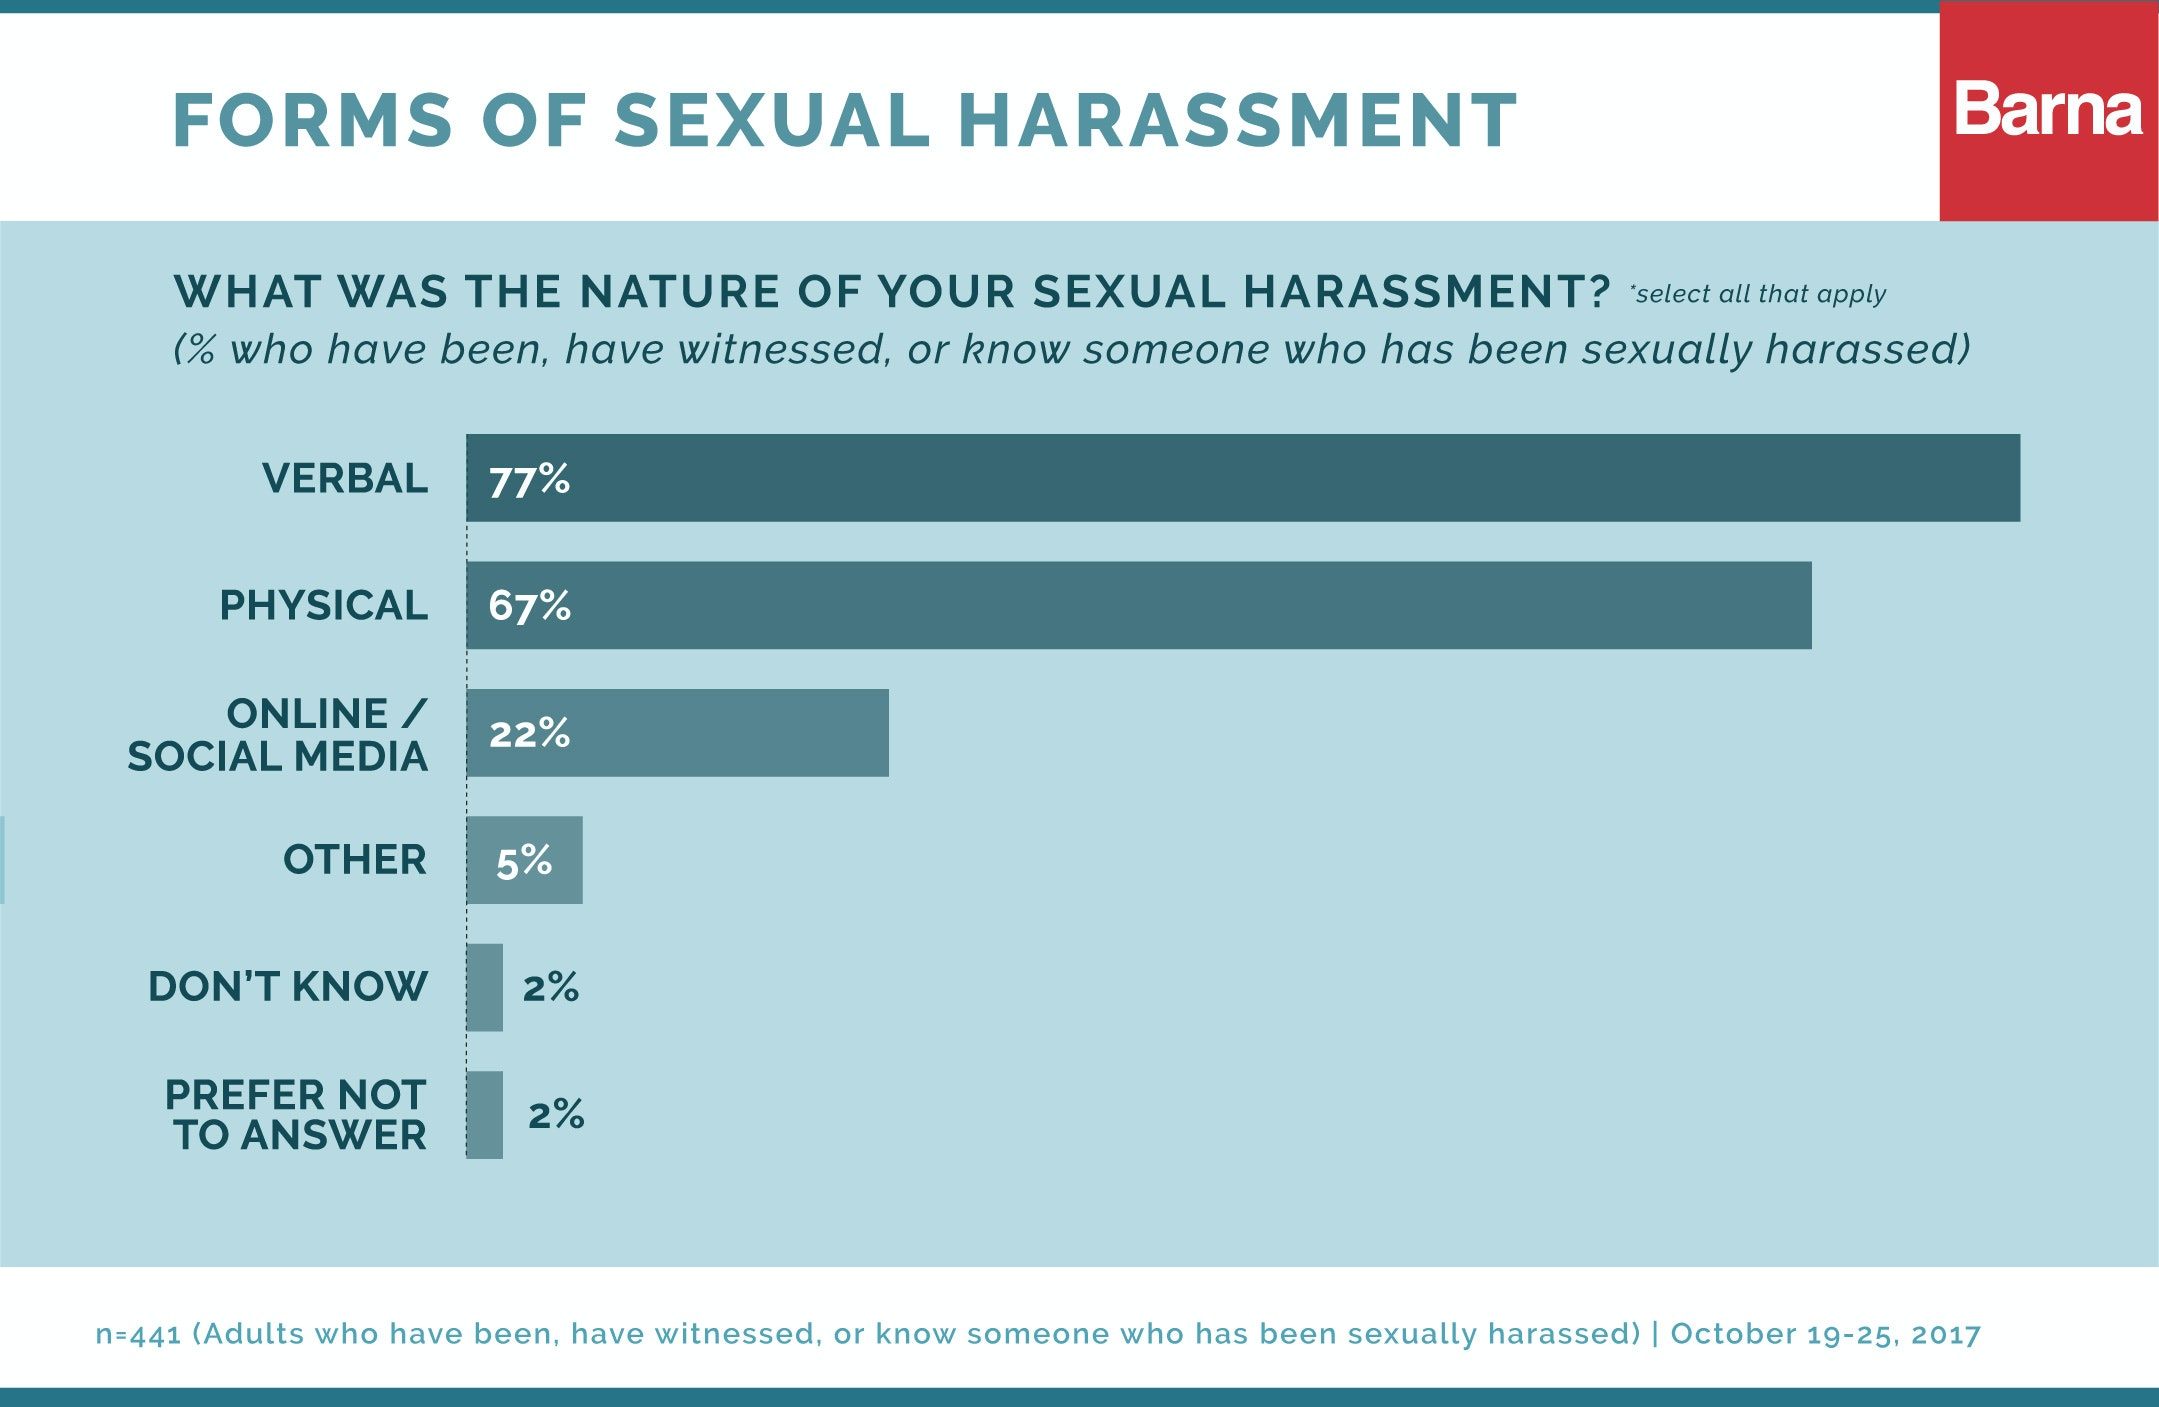 Why sexual harassment is not reported